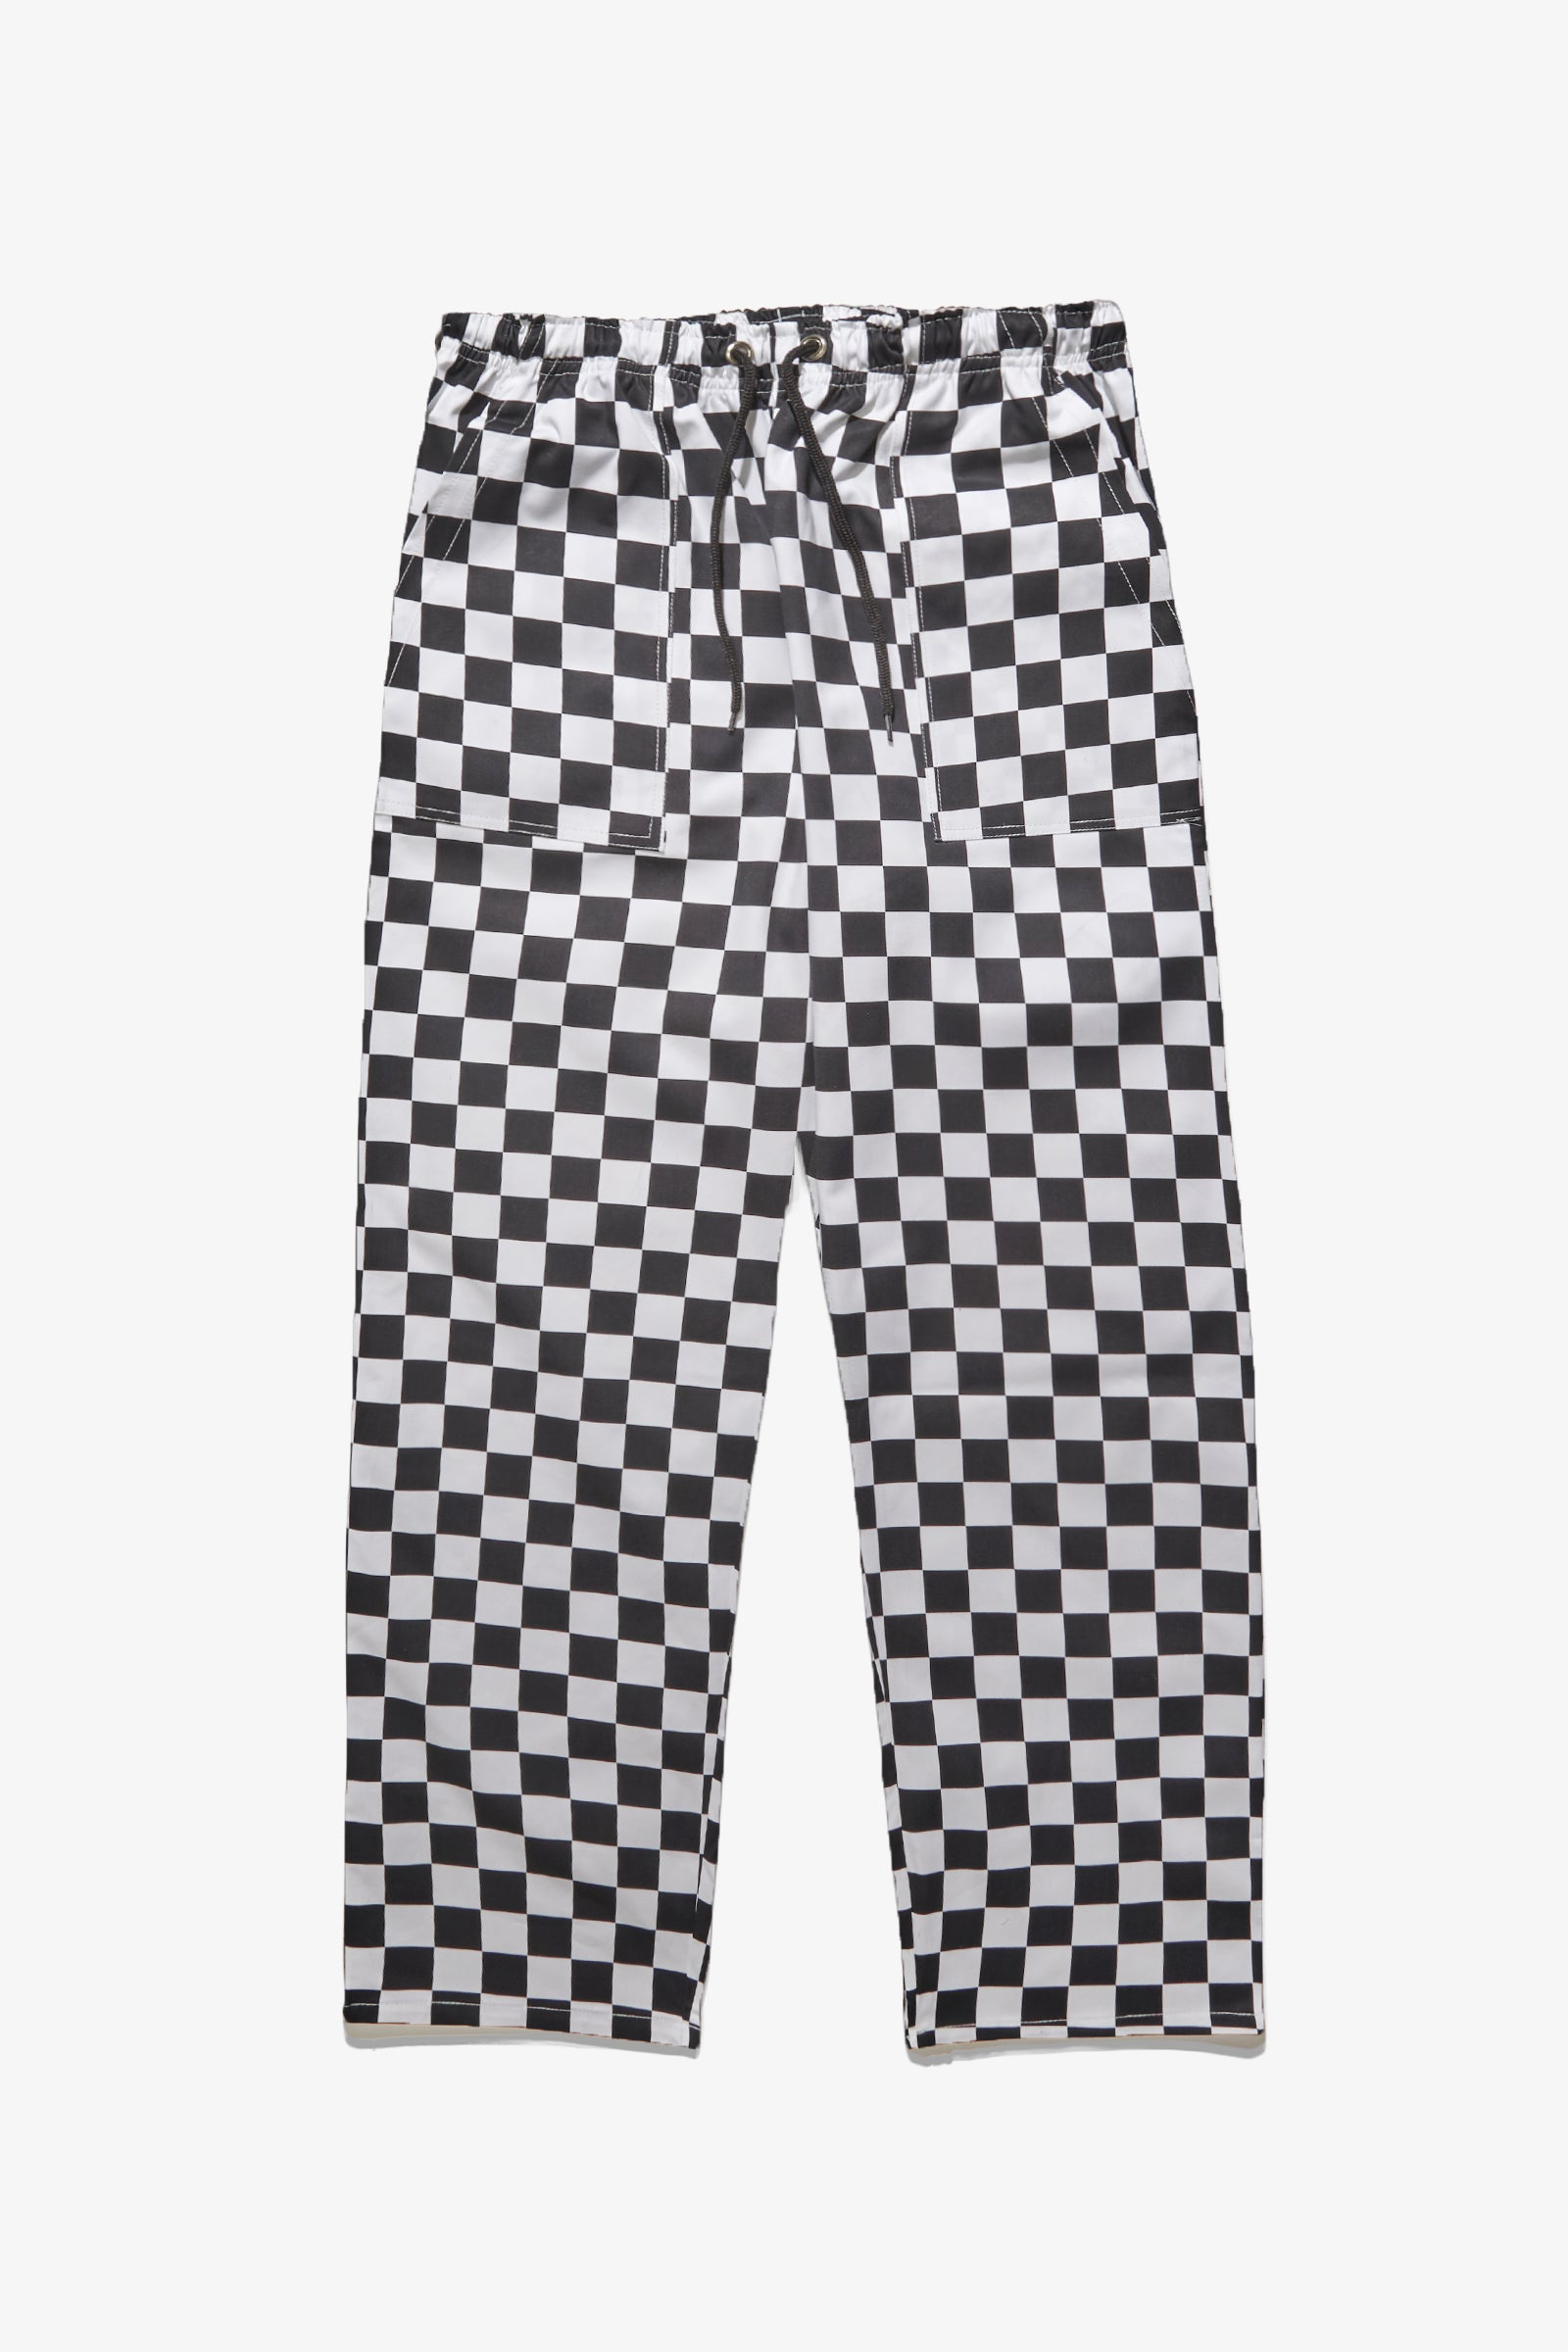 Service Works - Classic Chef Pants - Checkerboard